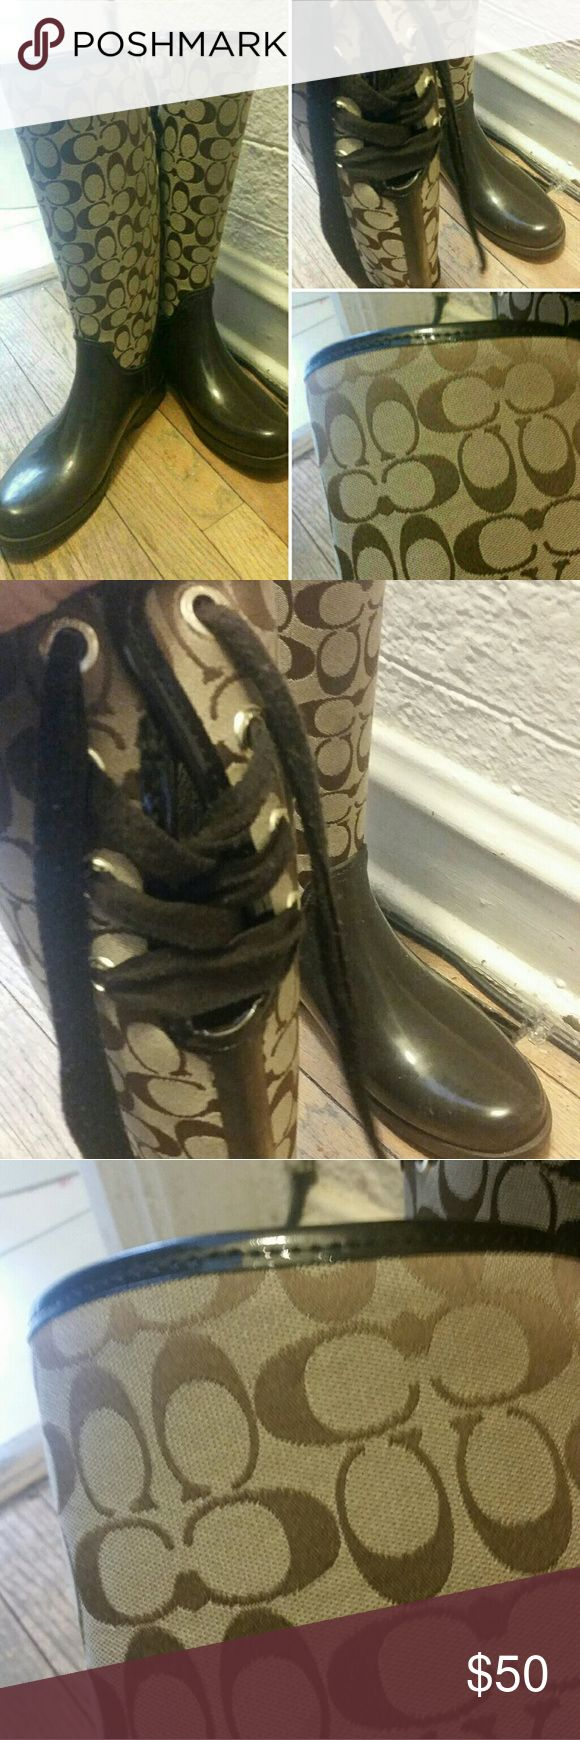 Coach Fabric rain boot size 9-10 These Coach rainboots are insulated. Thus your feet won't get cold, in cold weather, compared to other rubber rainboots. The upper half of the boots are made of thick coach materal. The shoelaces of the boots can be switch out for new ones. The bottom heel of the boots are slightly warn, due to the salt from the winter season. This can be fixed by your local shoe shop. This shoe is perfect for anyone who wears a women's shoe size 9-10. Price can be negotiable…